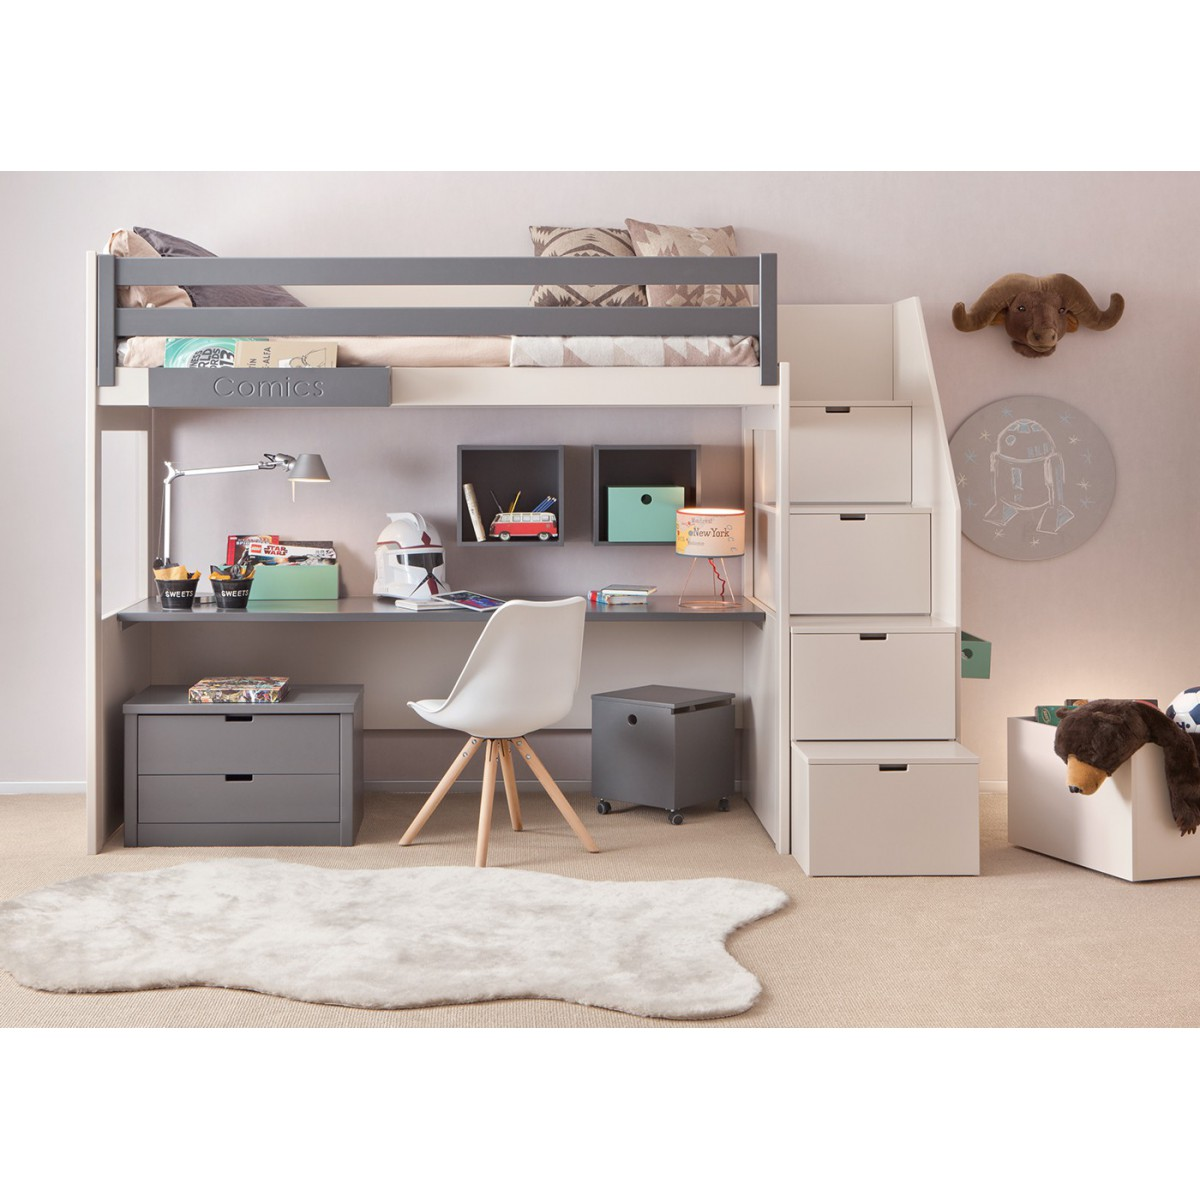 Chambre design sp cial ados juniors sign enfant design - Lit mezzanine bureau enfant ...